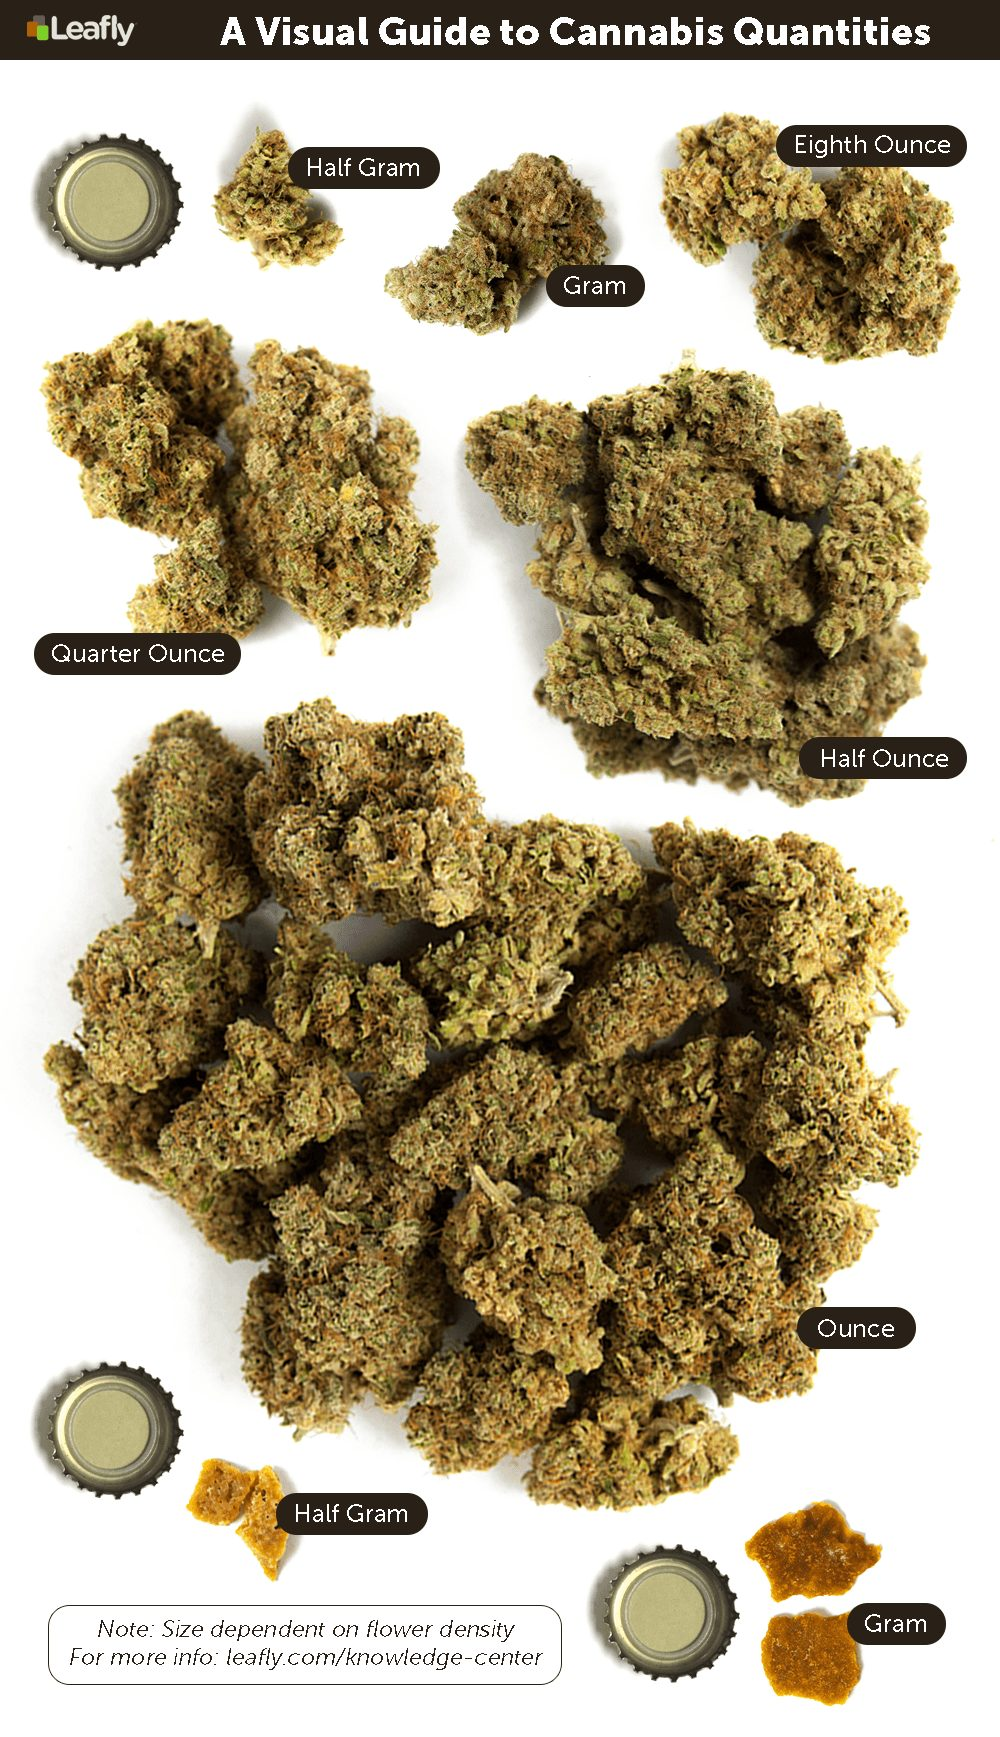 visual guide for weed quantities